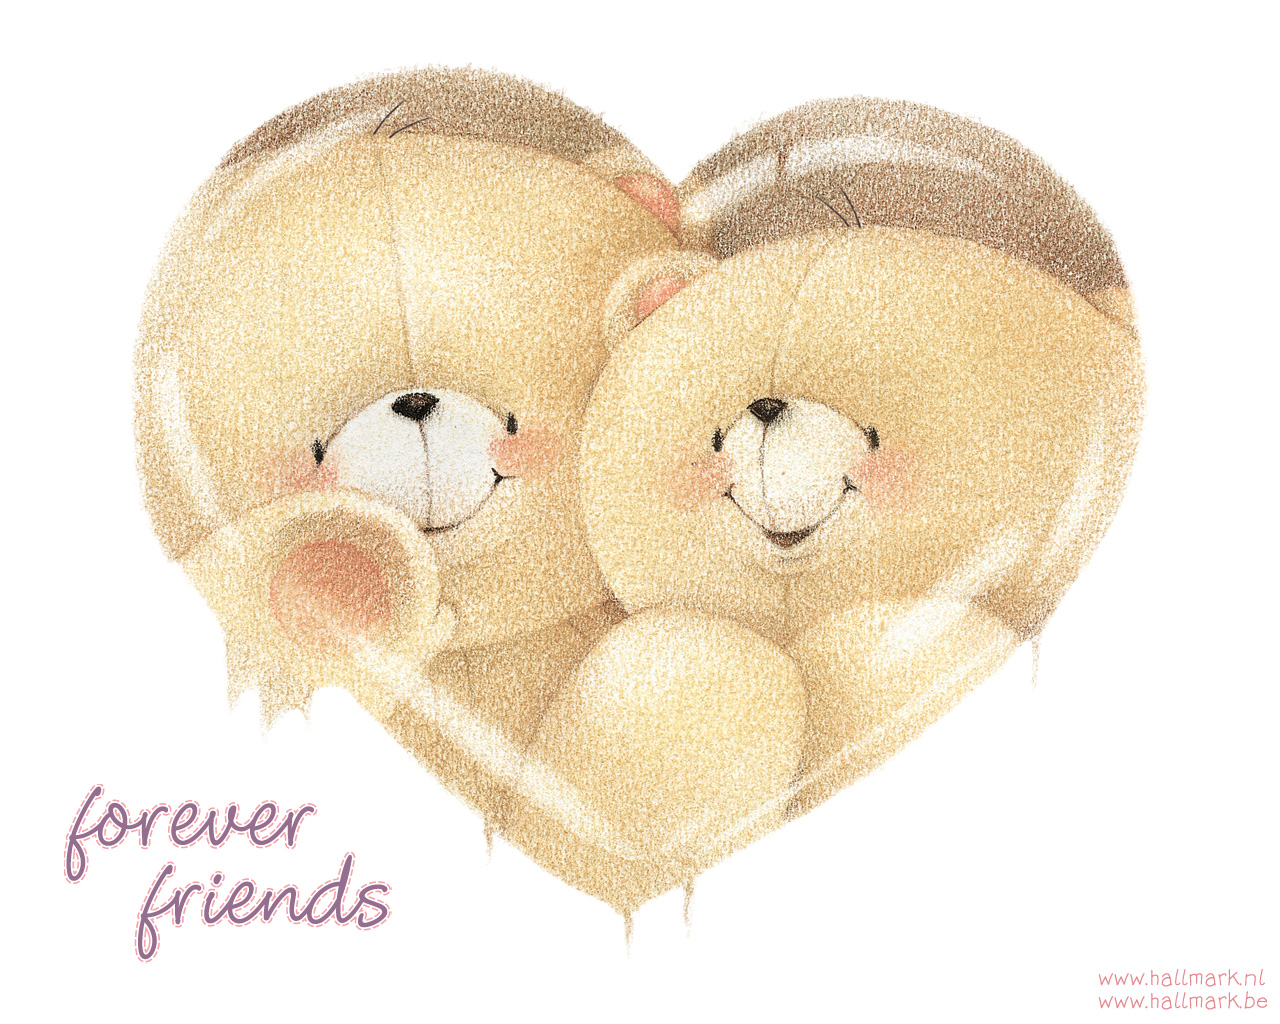 Forever Friends fanzone 1280x1024